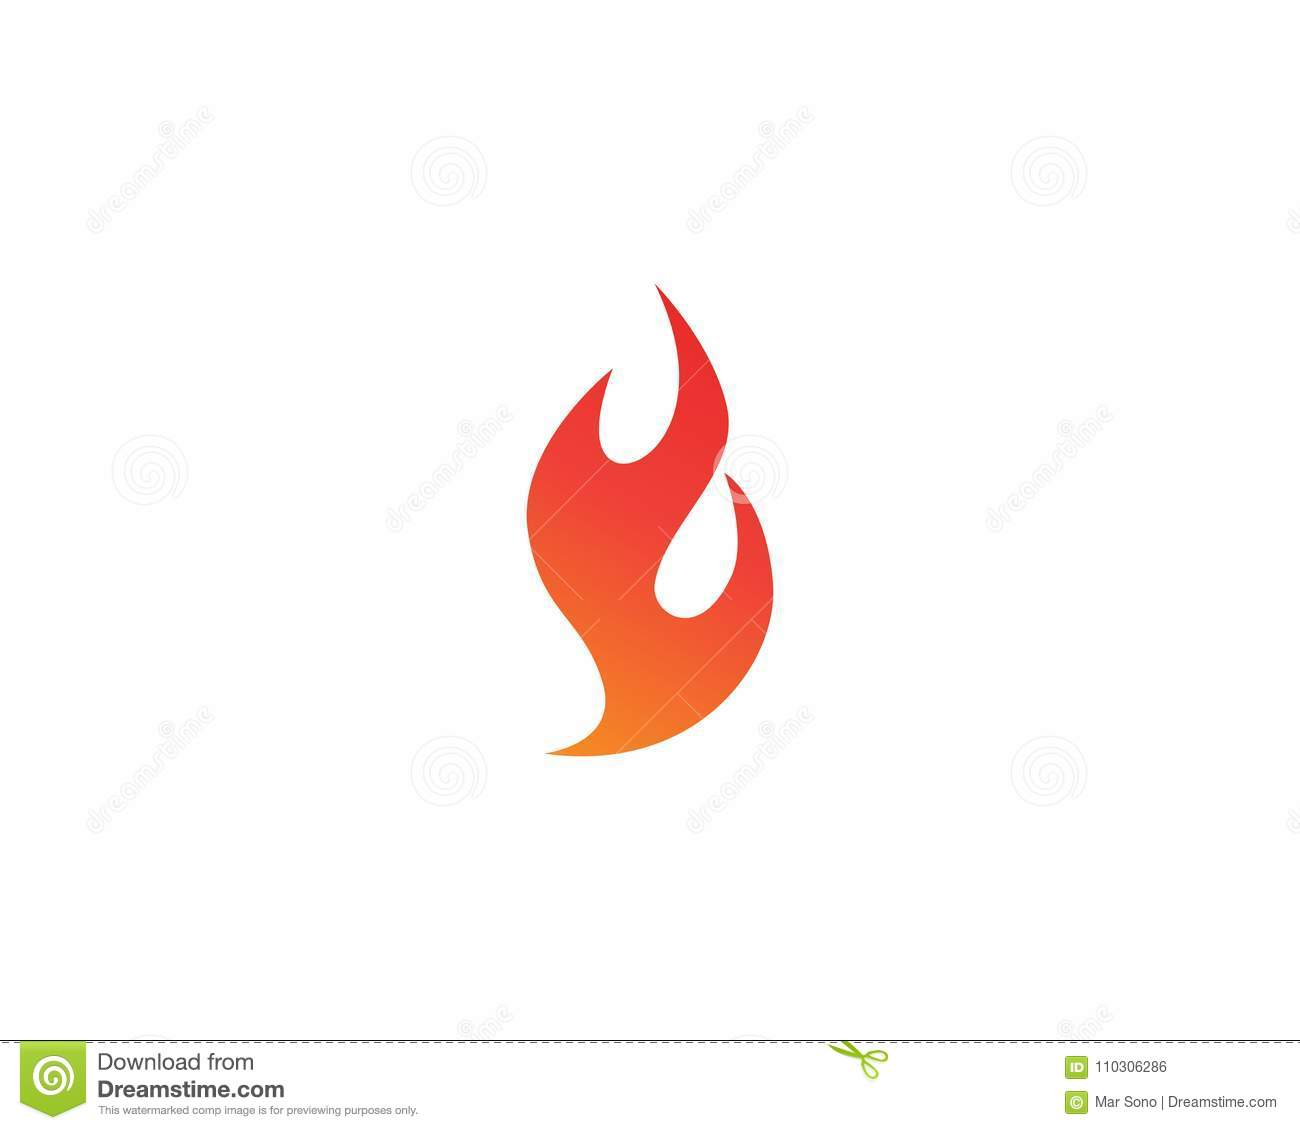 Fire Logo And Symbols Template Icons App Stock Vector - Illustration